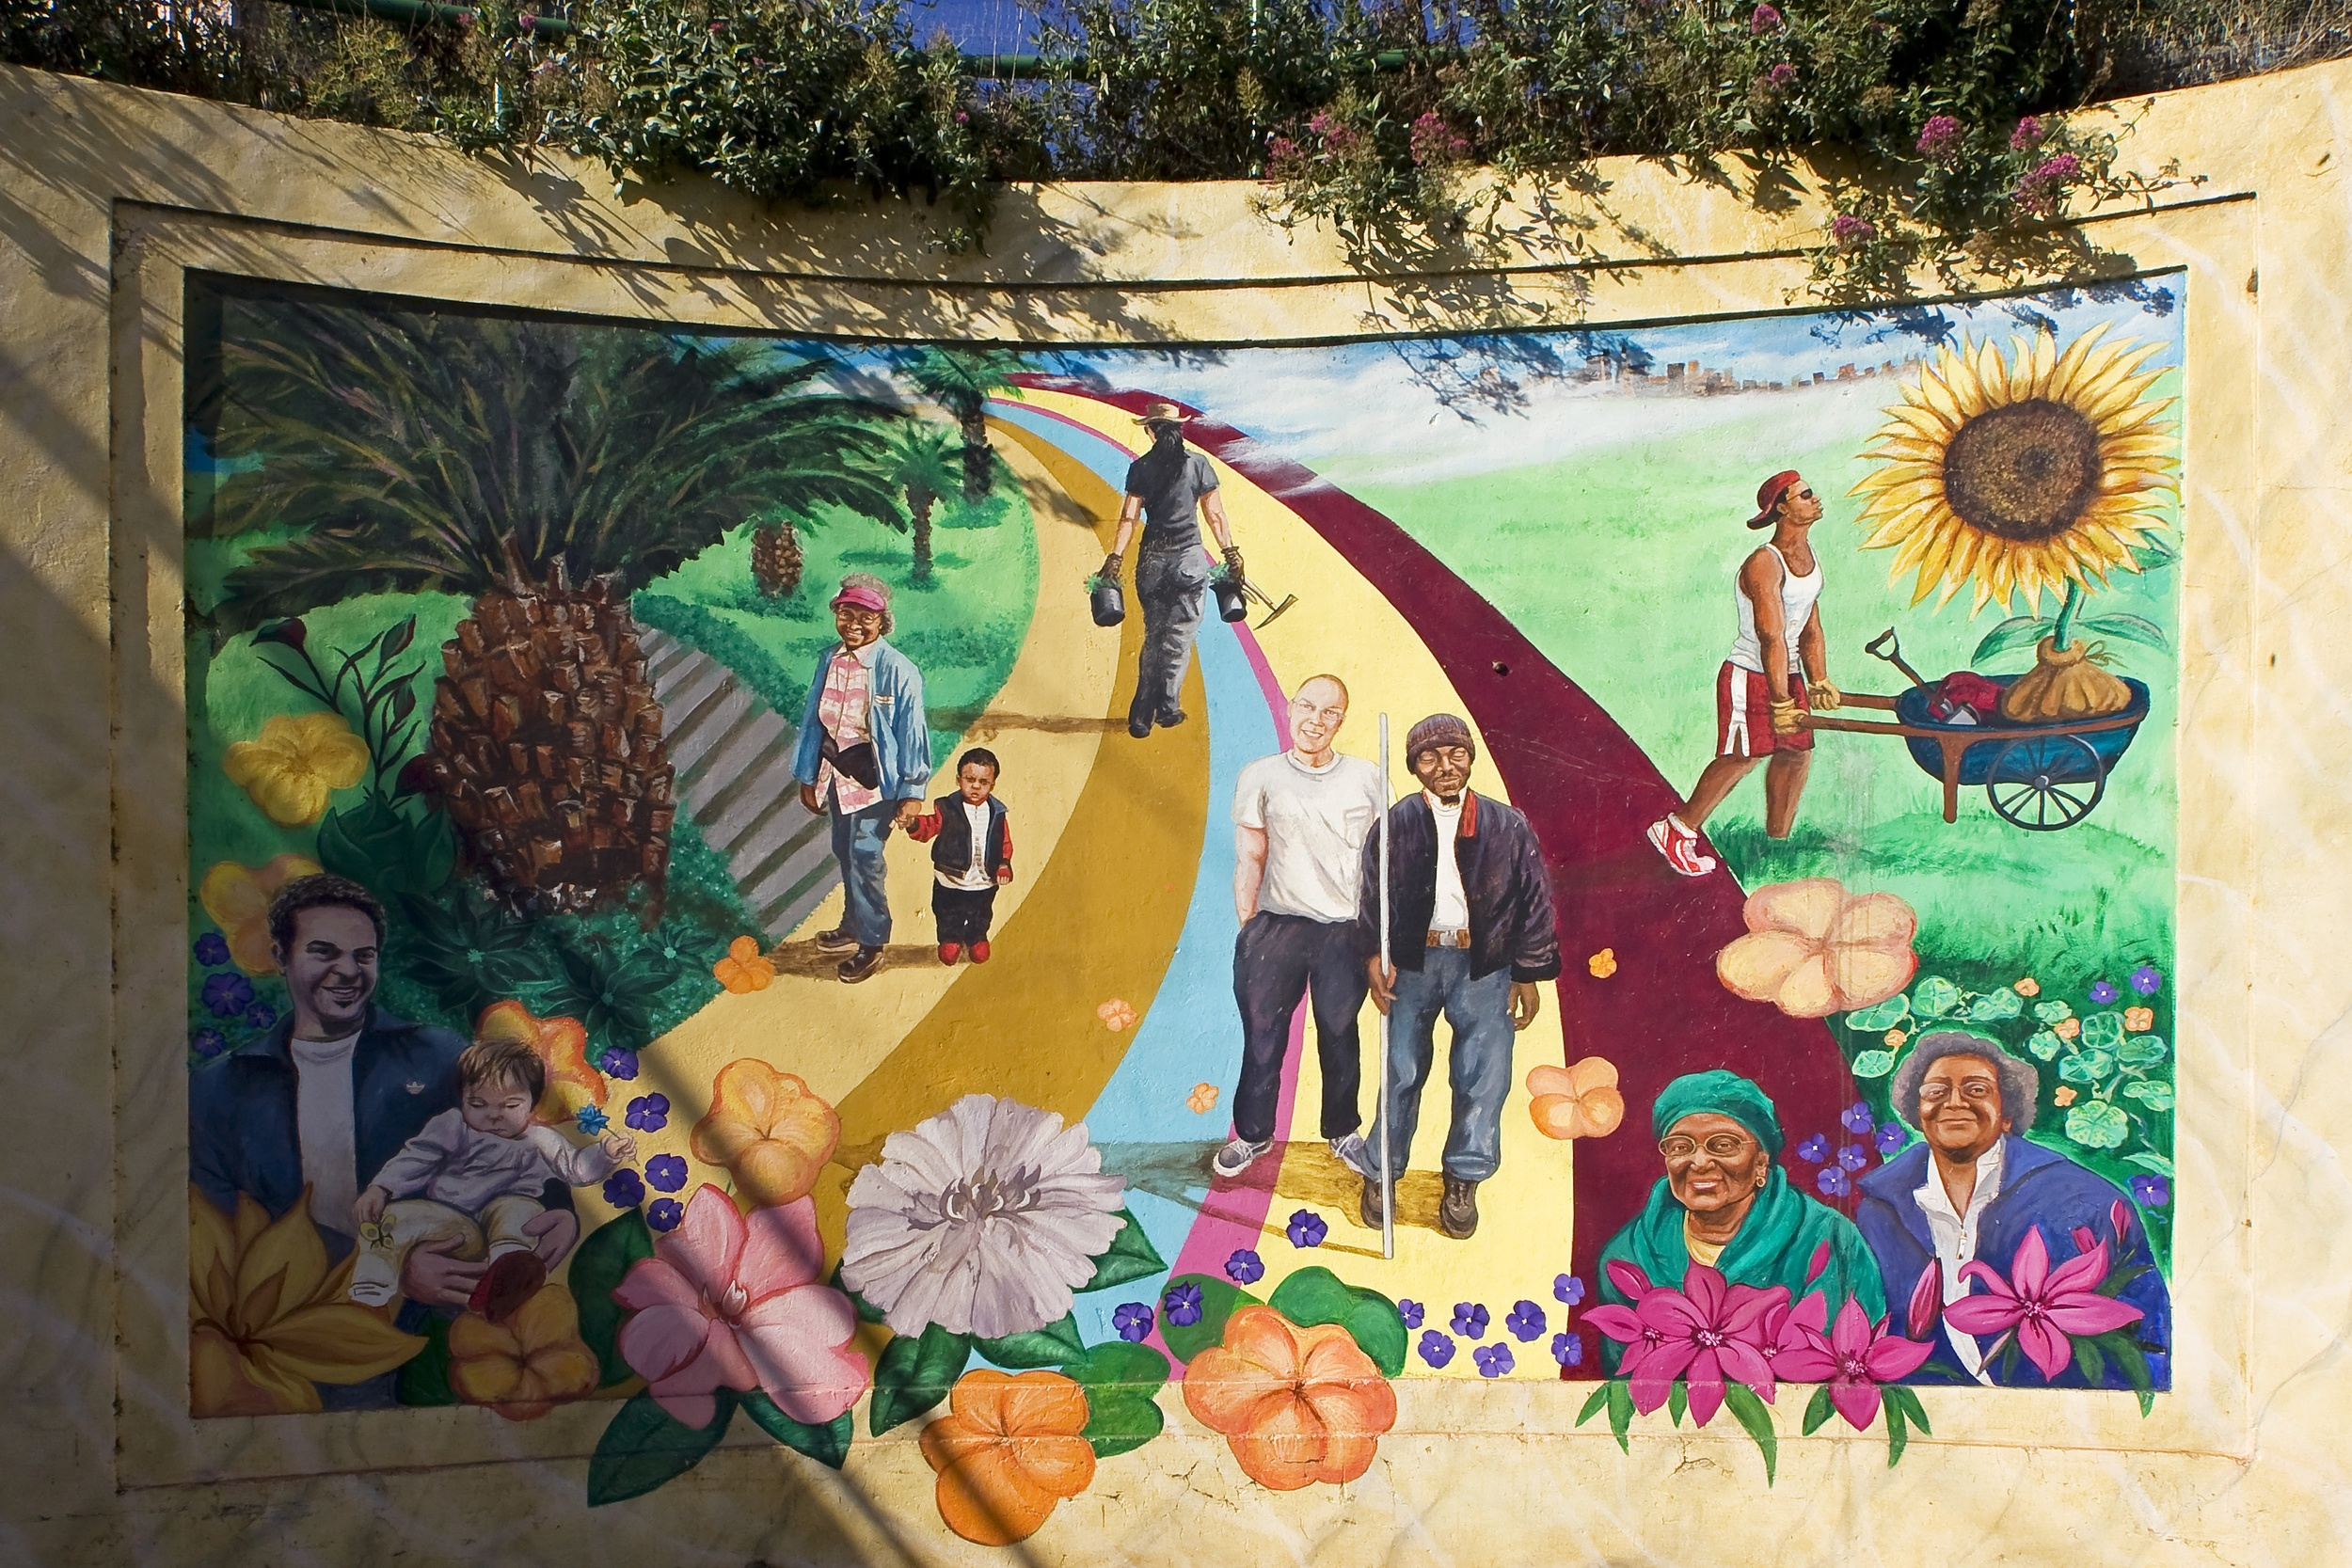 The Quesada Gardens Initiative is an award-winning community project that has spawned a network of gardens, public art and gathering spaces.